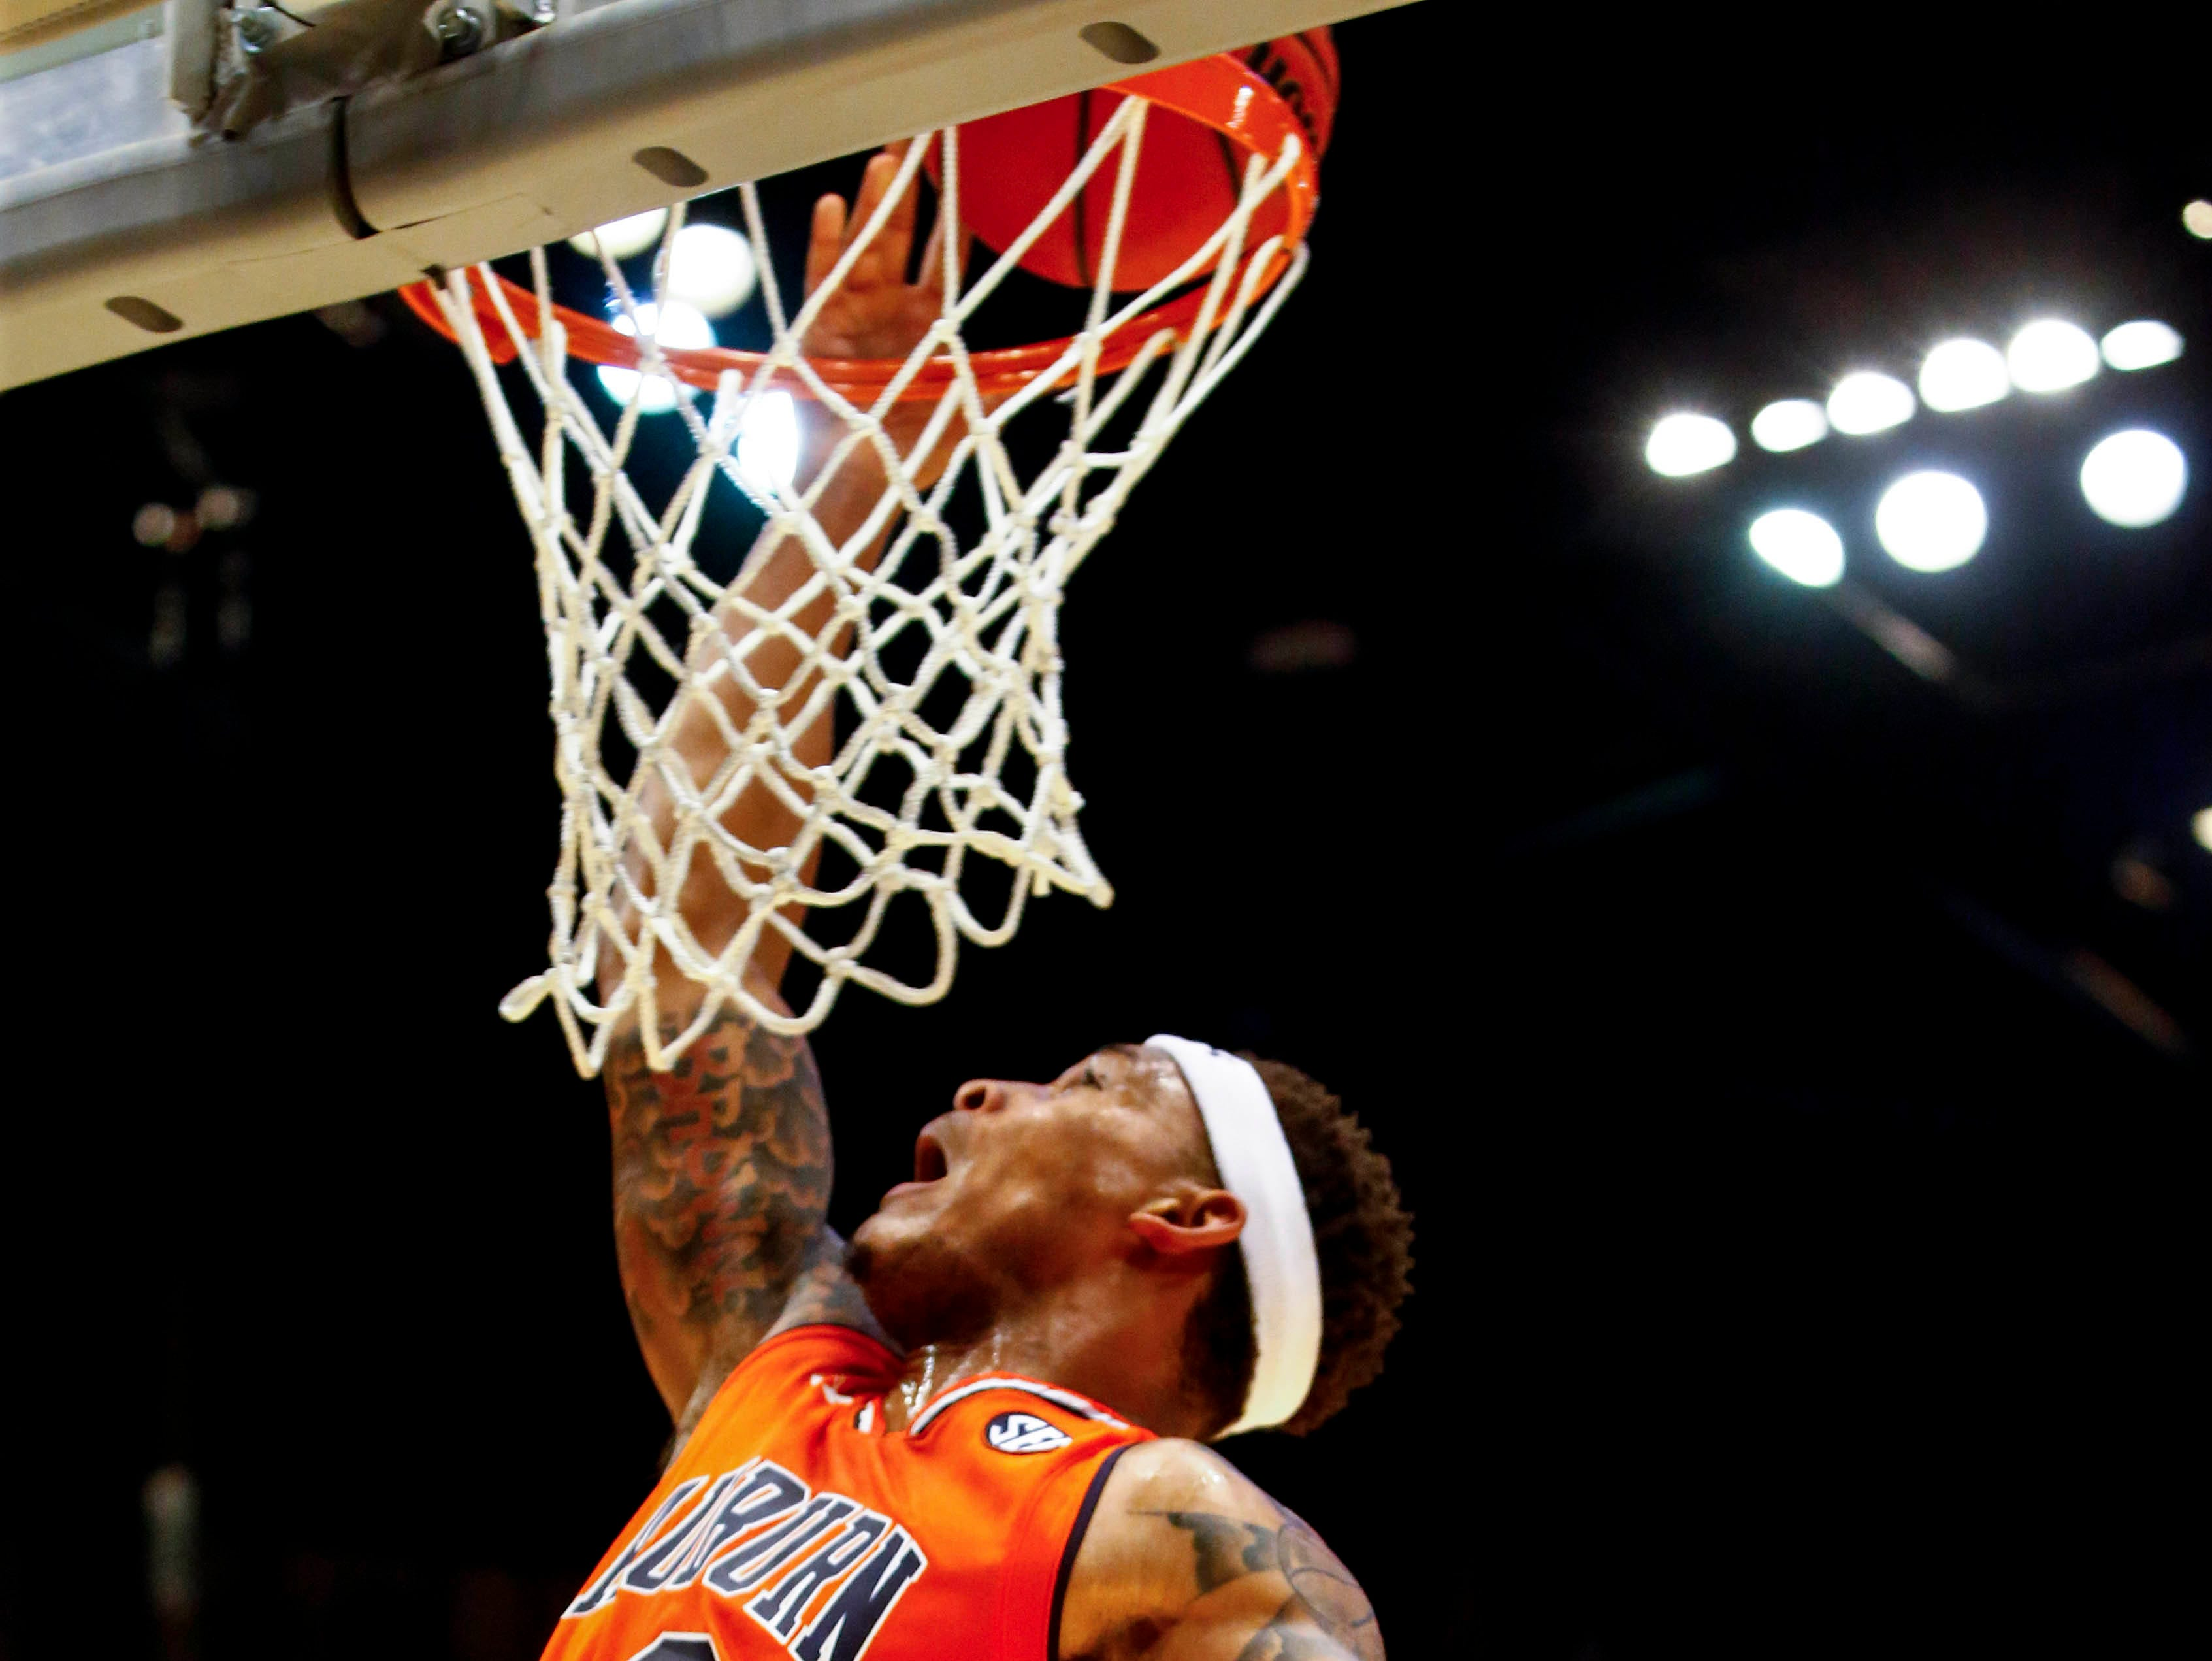 Dec 15, 2018; Birmingham, AL, USA; Auburn Tigers guard Bryce Brown (2) slam dunks the ball in a NCAA basketball game against the UAB Blazers at Legacy Arena. Mandatory Credit: Butch Dill-USA TODAY Sports